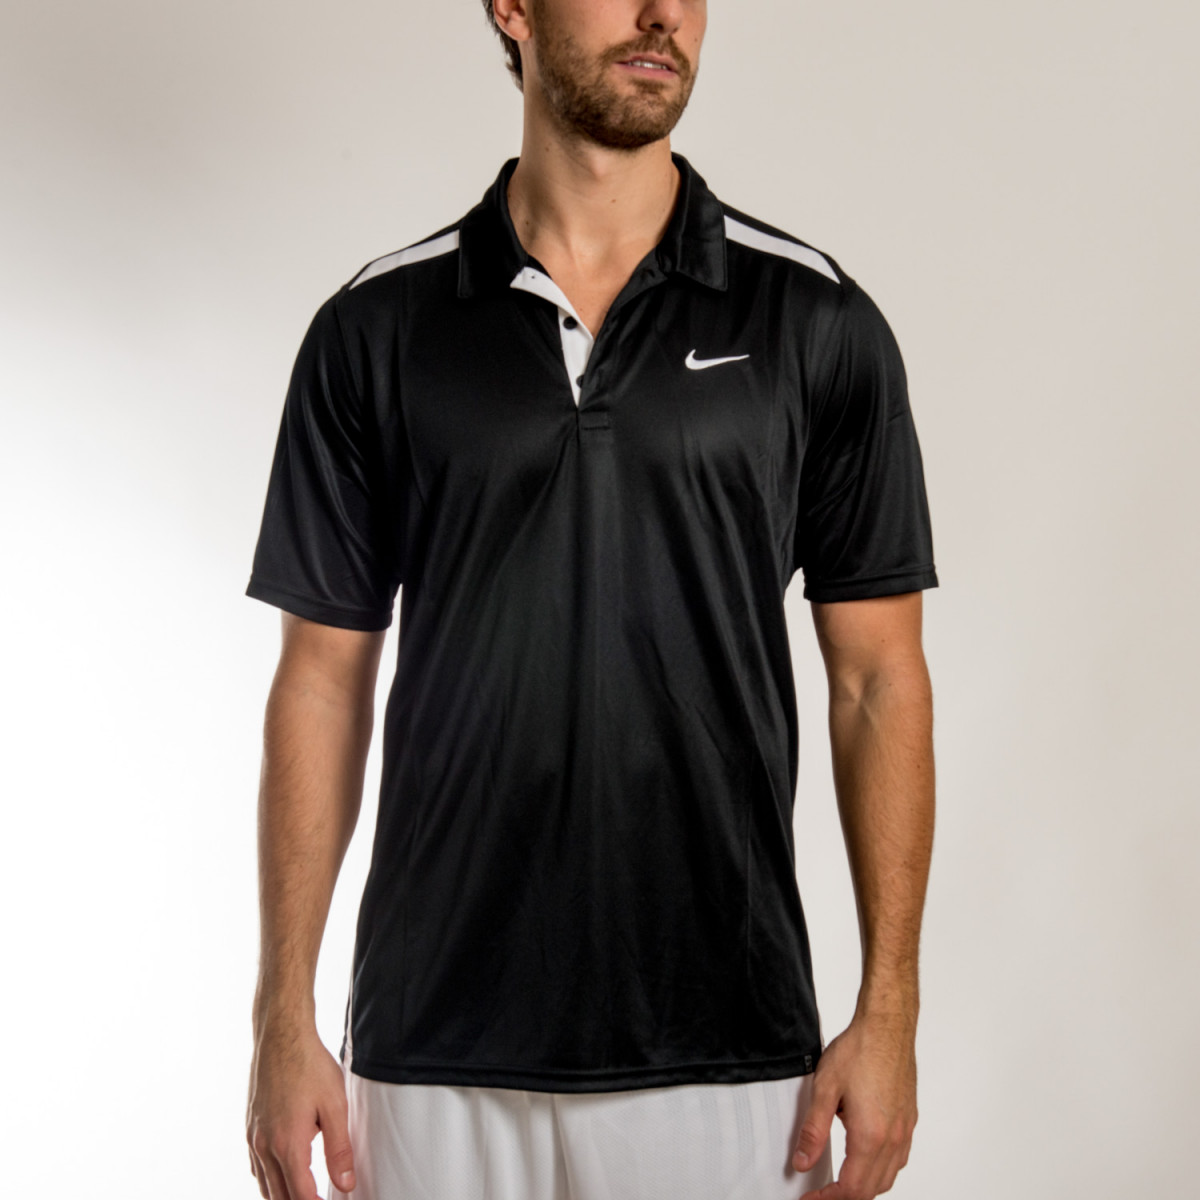 CHOMBA NIKE UV  POLO